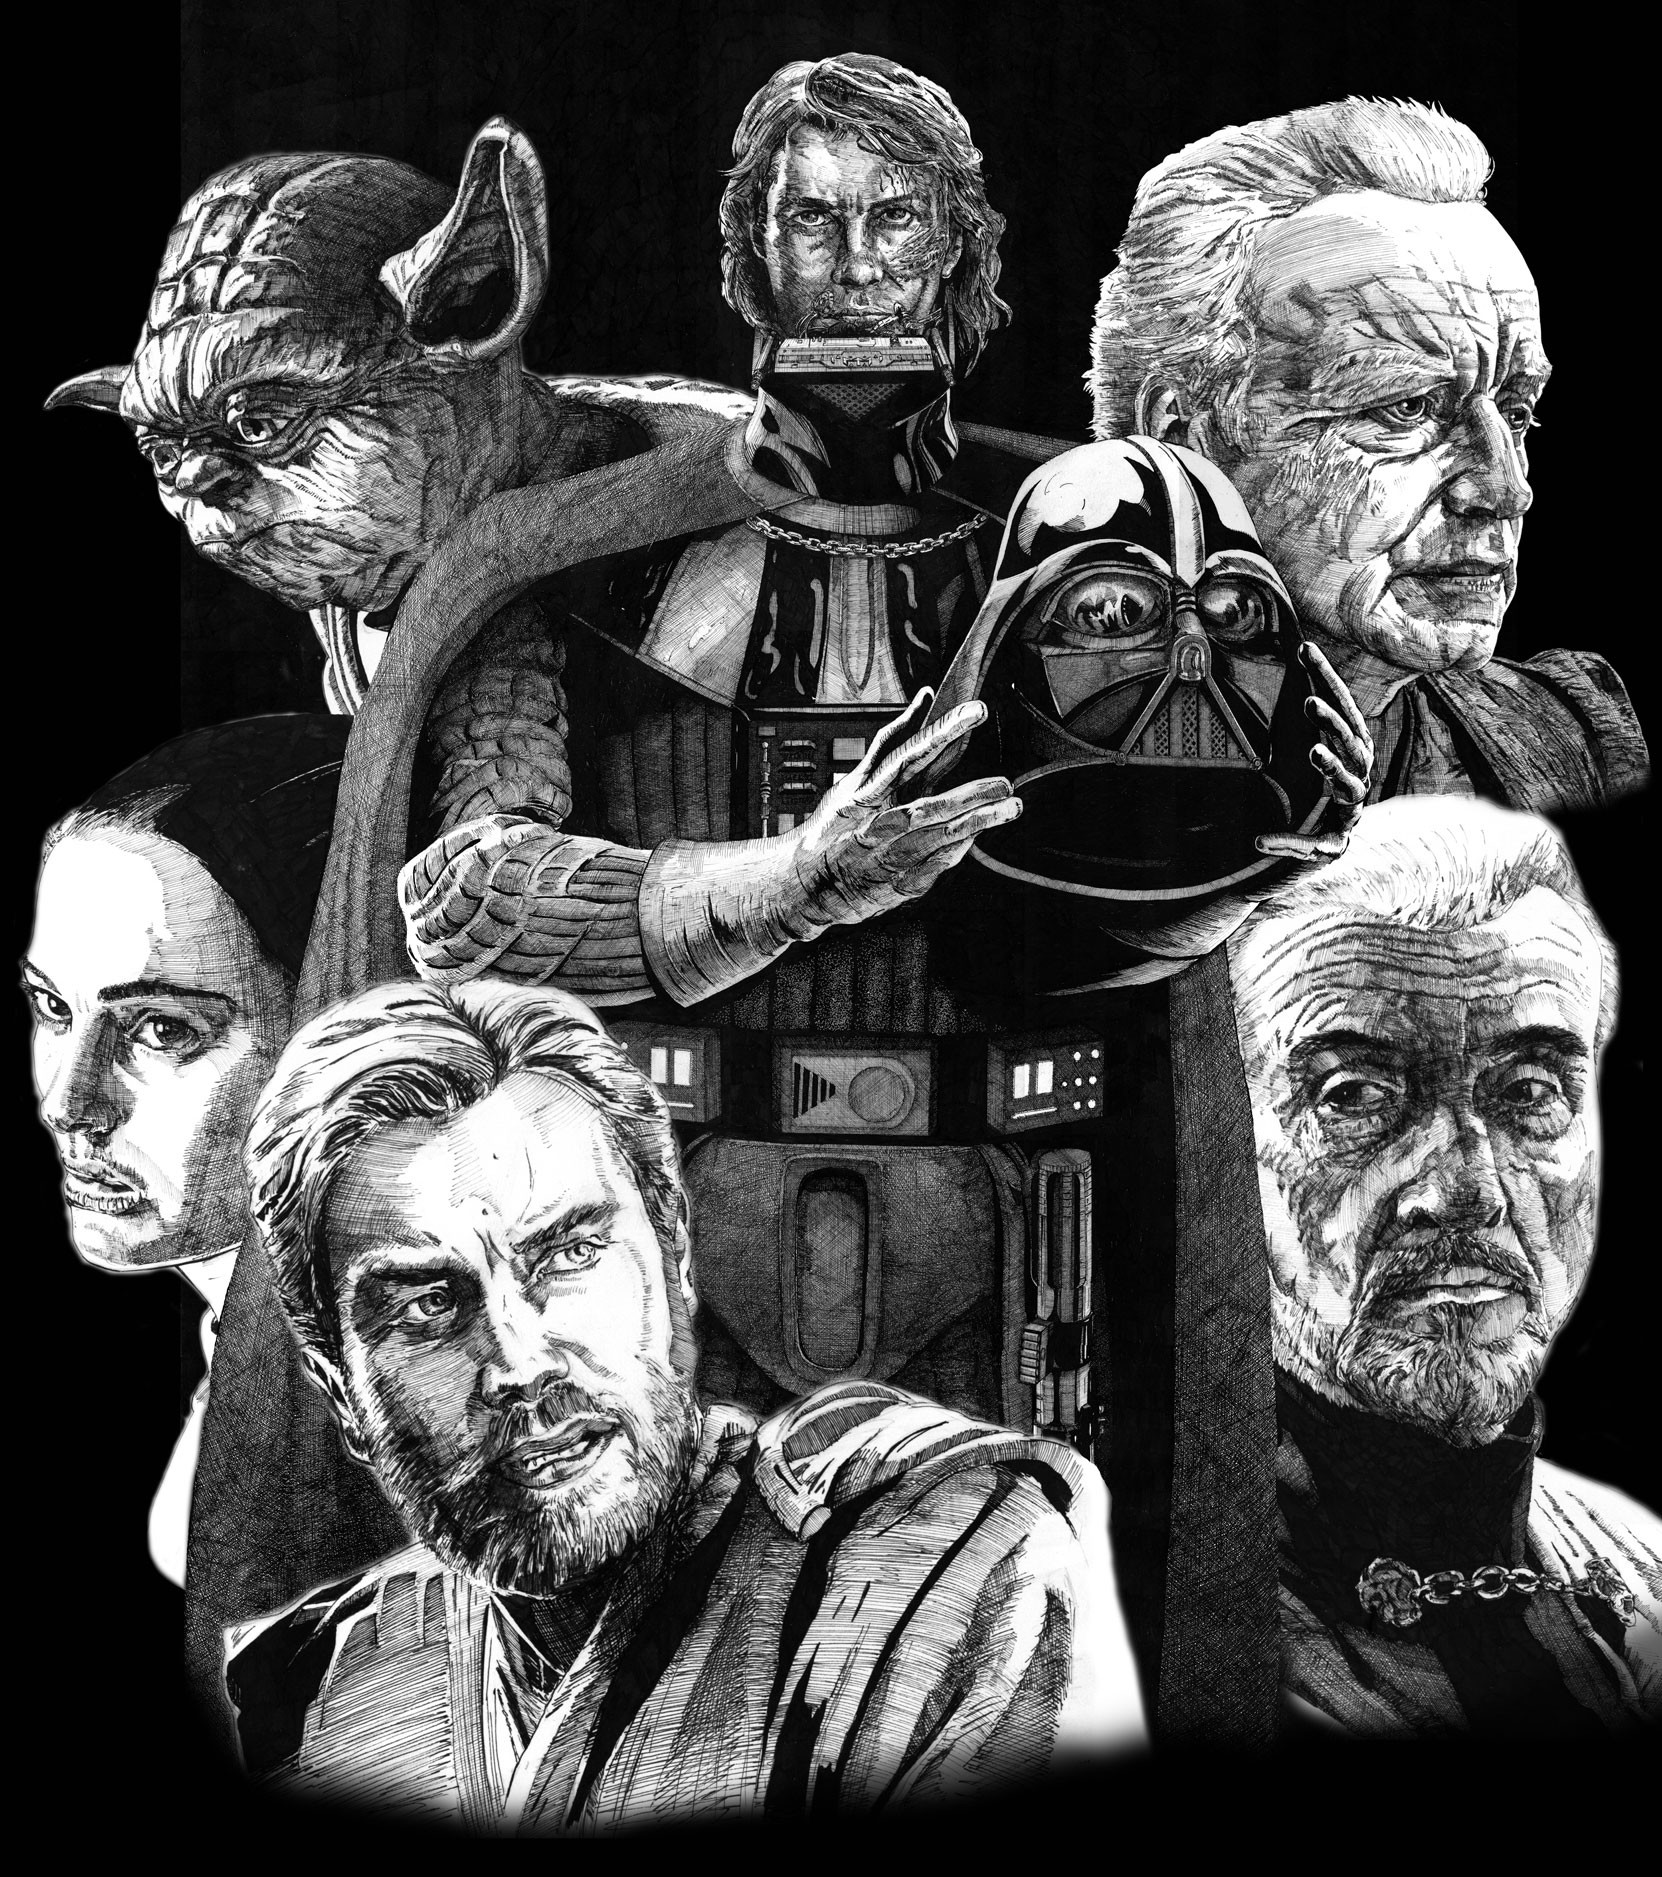 """Initial composition done before coloring individual characters so I could determine a unified color scheme. The central figure of Anakin was drawn a bit larger on actual 27"""" x 41"""" board than the other characters."""